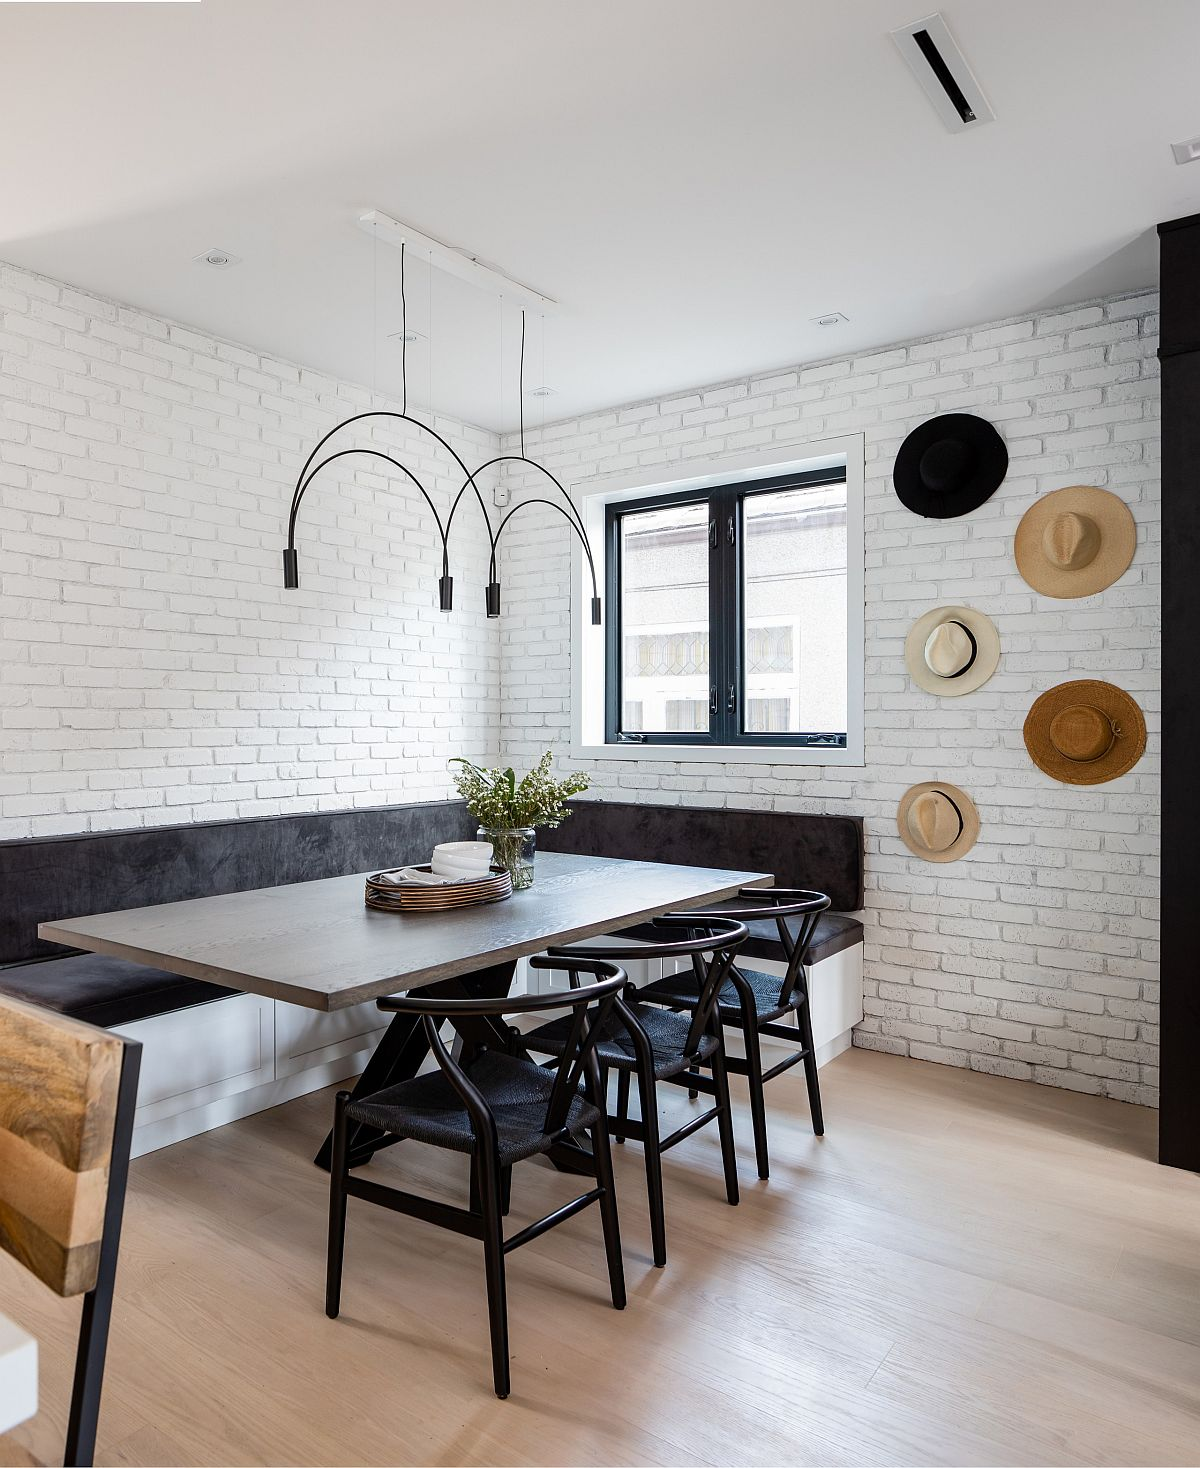 Custom-corner-banquette-seat-coupled-with-stylish-chairs-bring-black-to-the-dining-room-16436